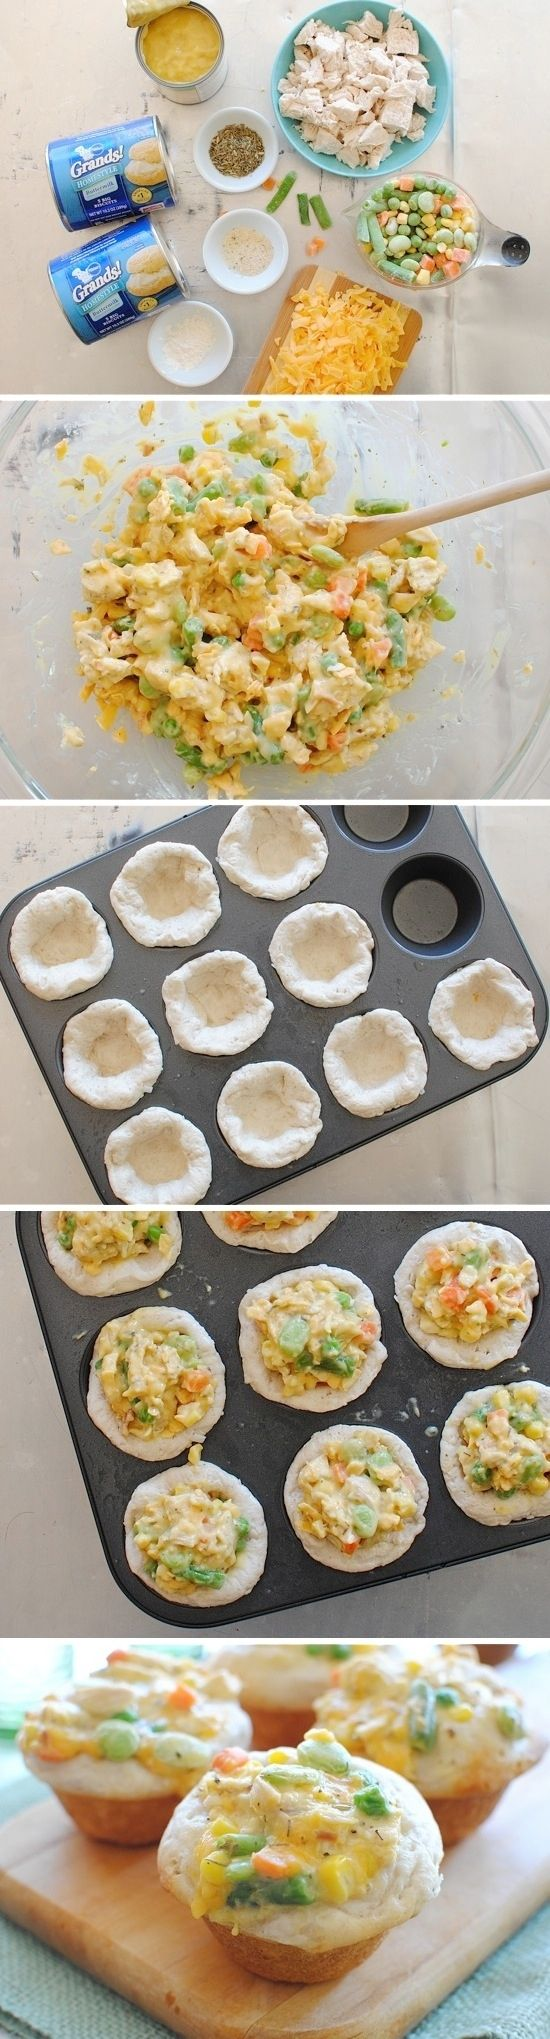 Mini Chicken Pot Pies | 24 Awesome Muffin Tin Recipes.  Will try with GF muffins